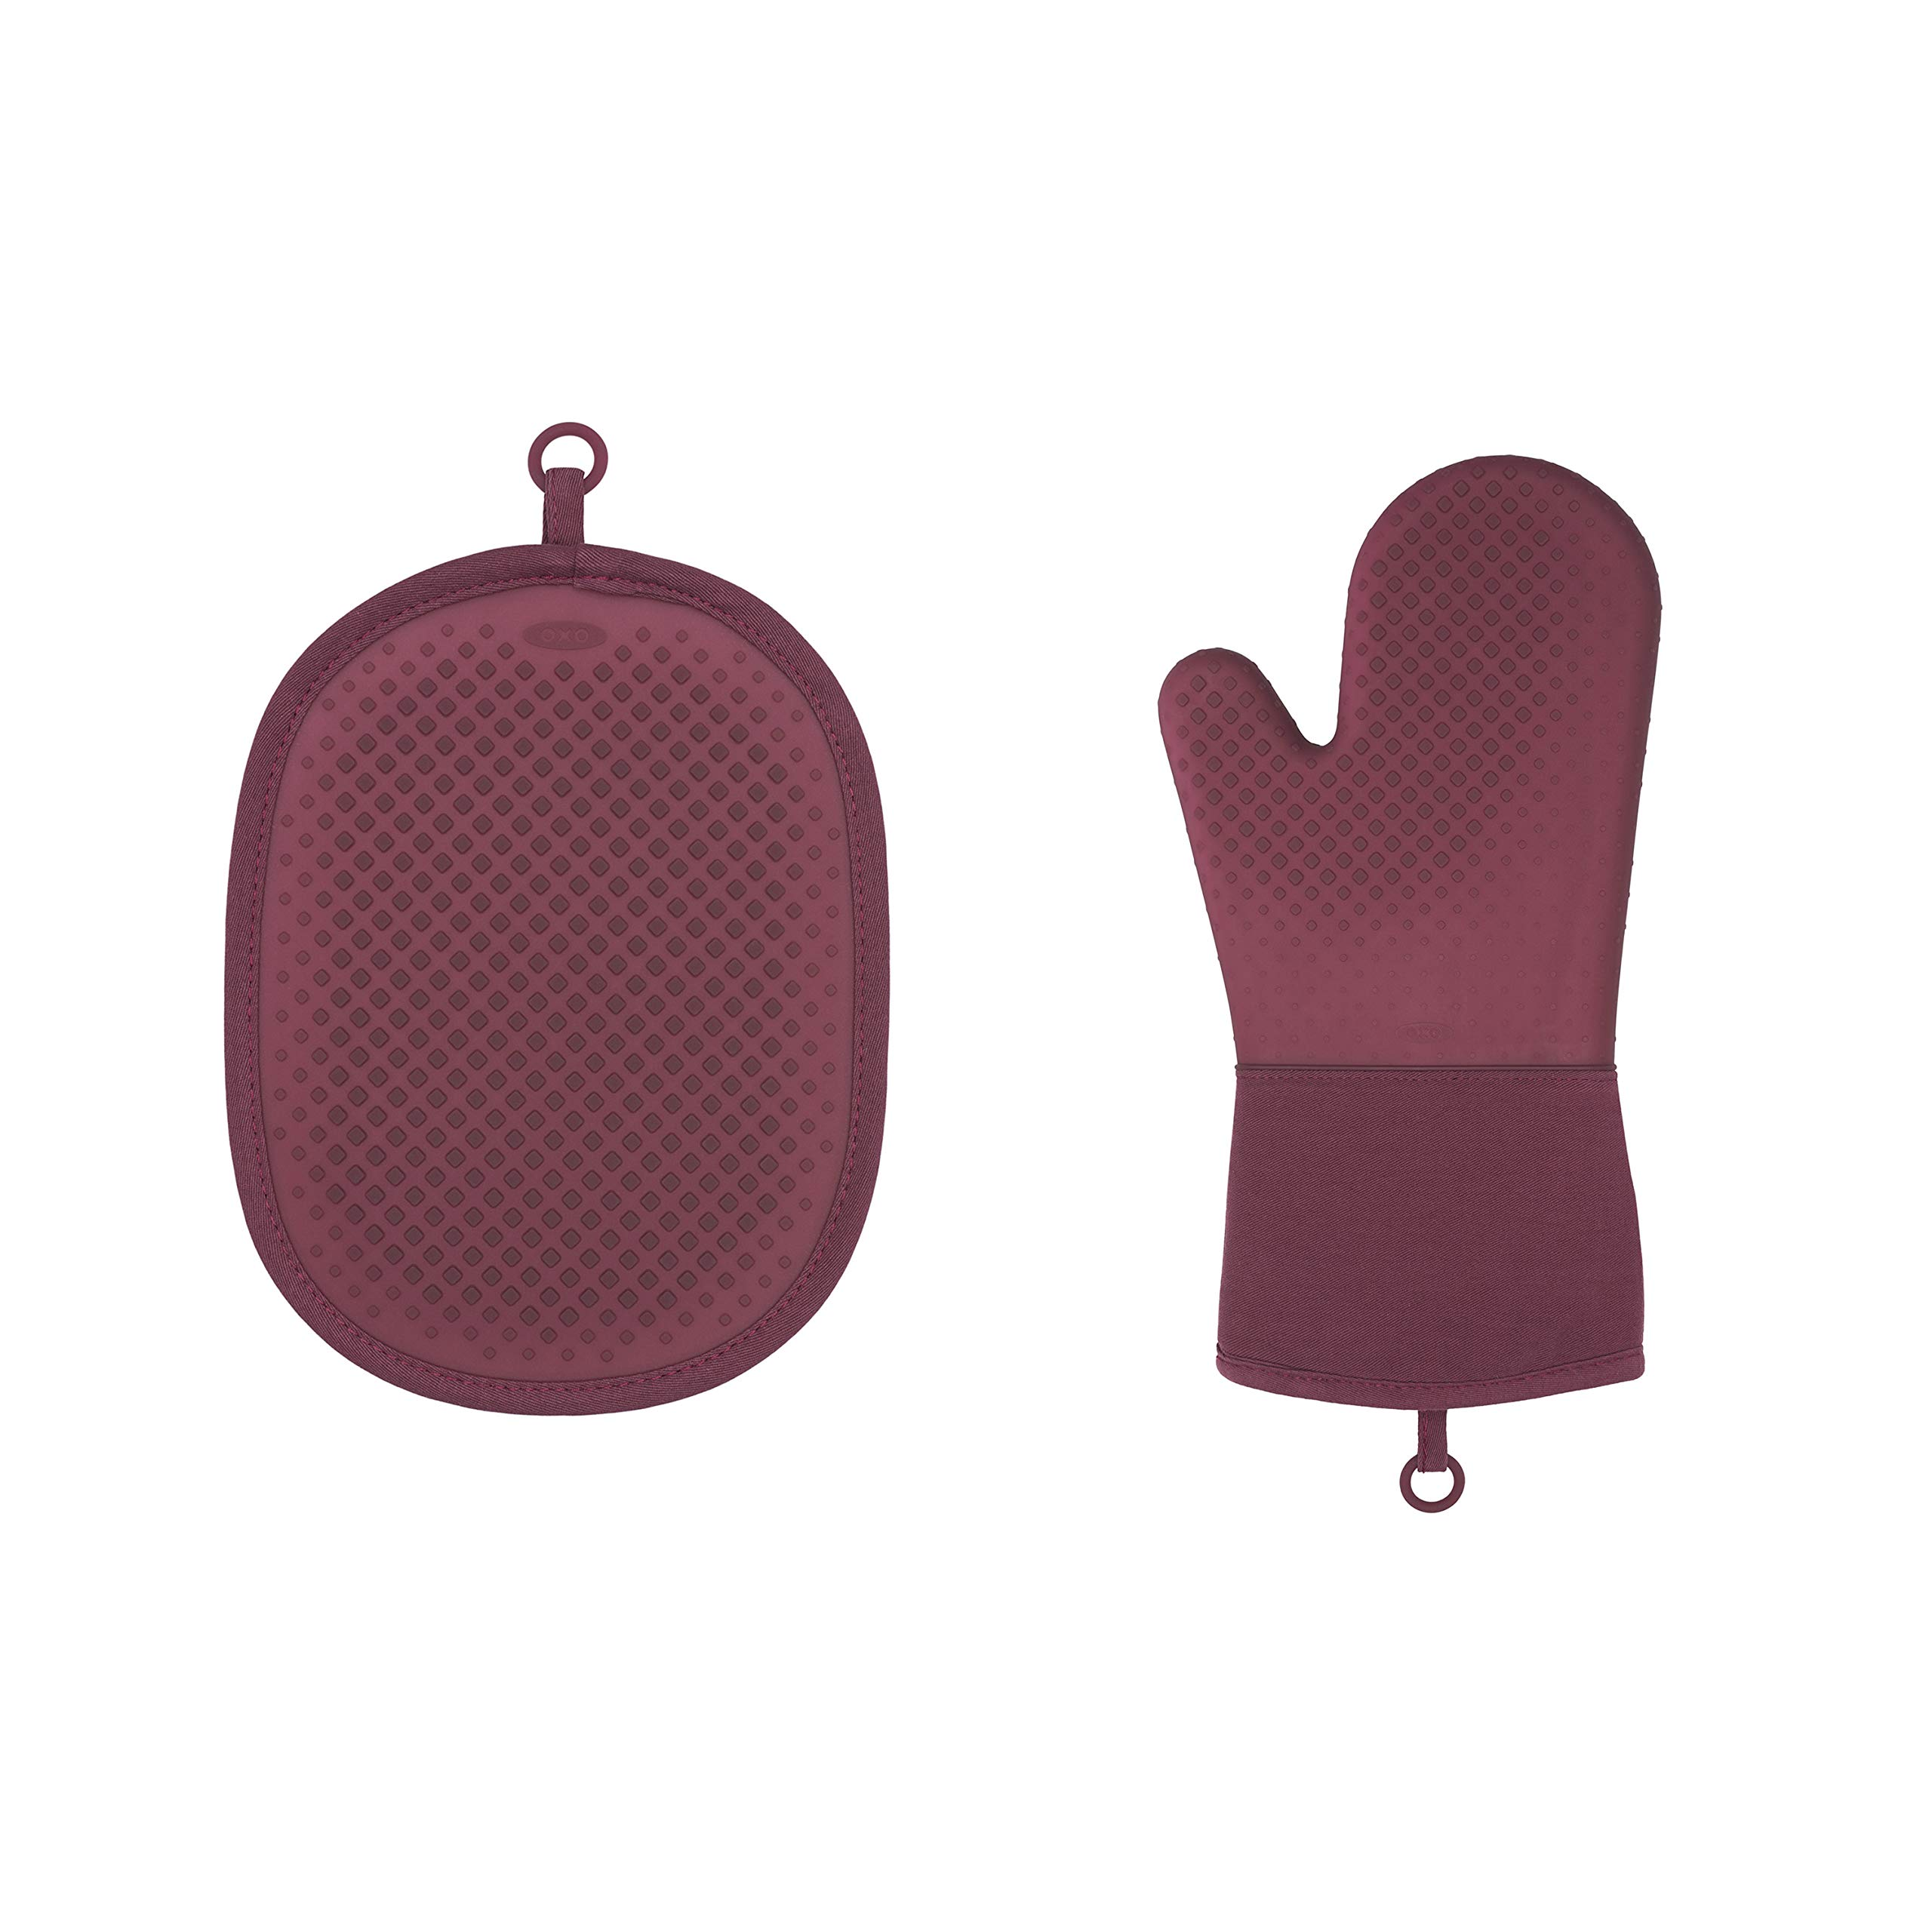 OXO Good Grips Silicone Oven Mitt & Pot Holder Set by OXO